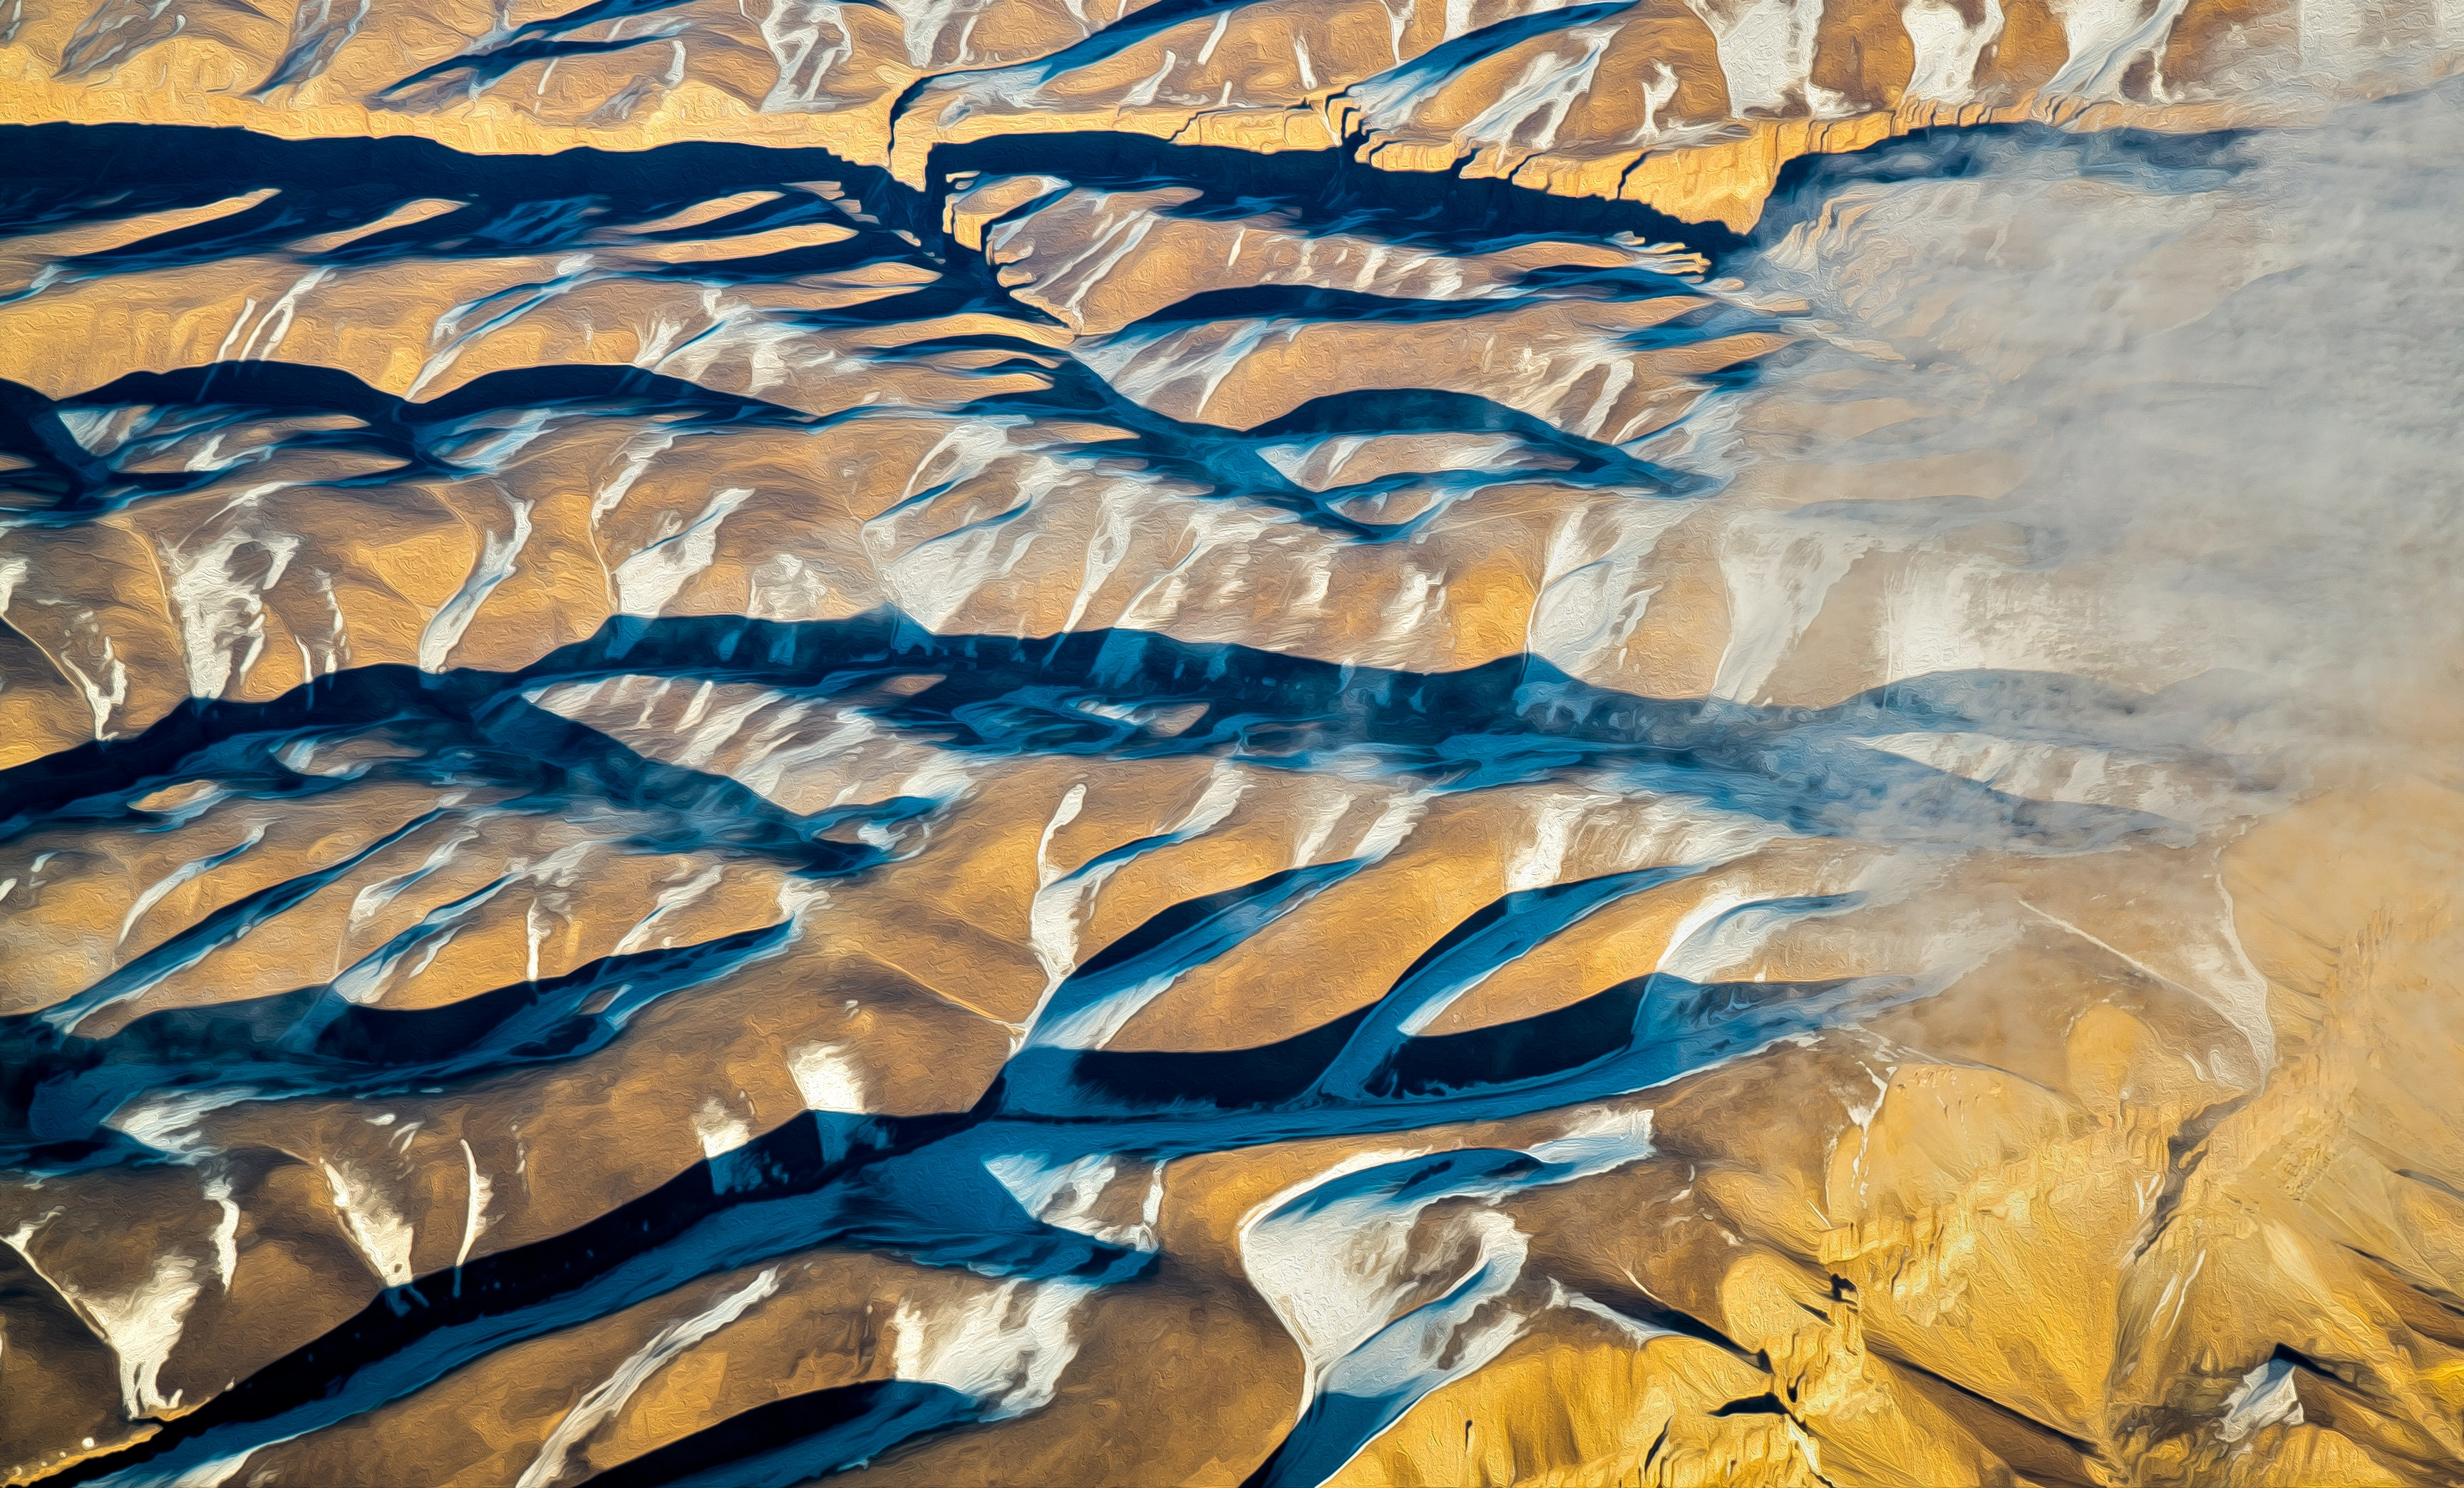 Wavy patterns through the sandy terrain of a desert in Afghanistan